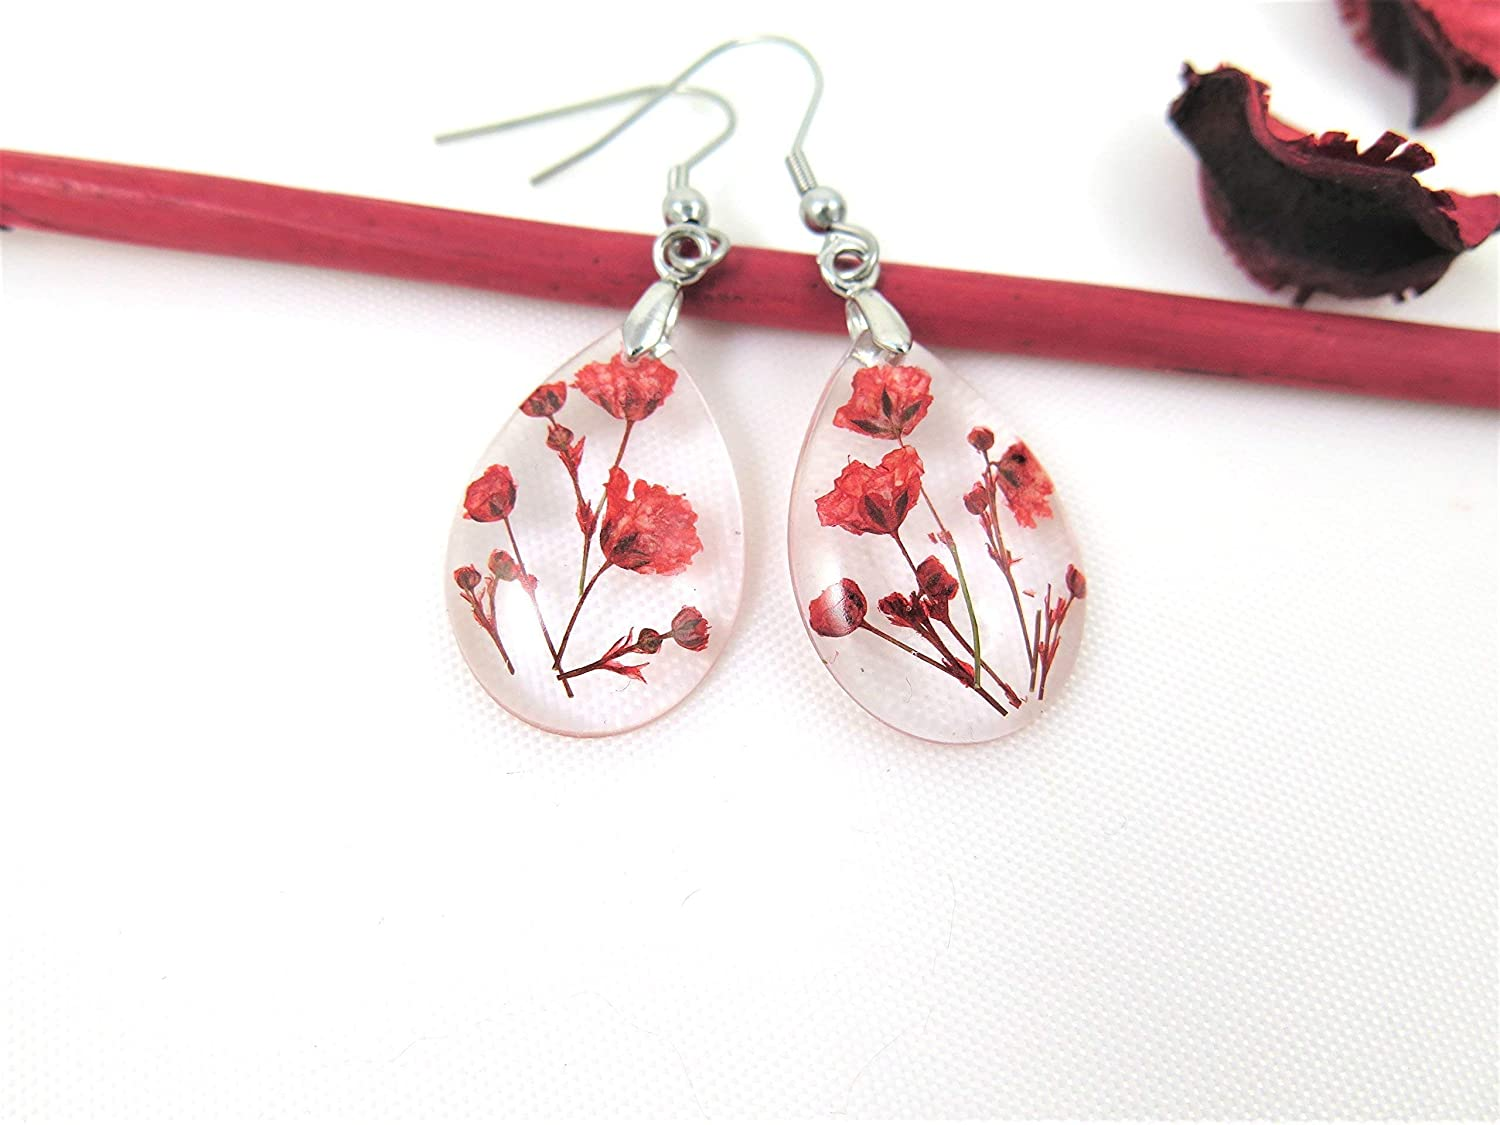 Amazon.com: Handmade Botanical Resin Earrings, Real Flower ...